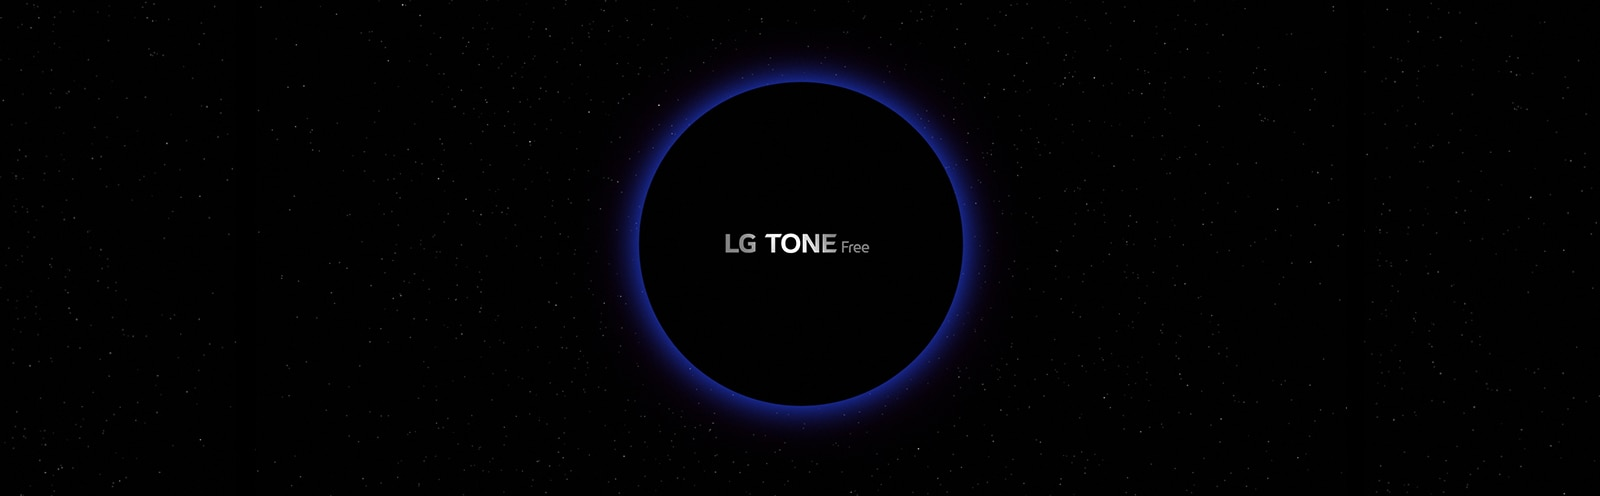 "An image of a galaxy space and a blue-lighted circle in the middle of it with ""LG TONE Free"" lettering inside the circle"